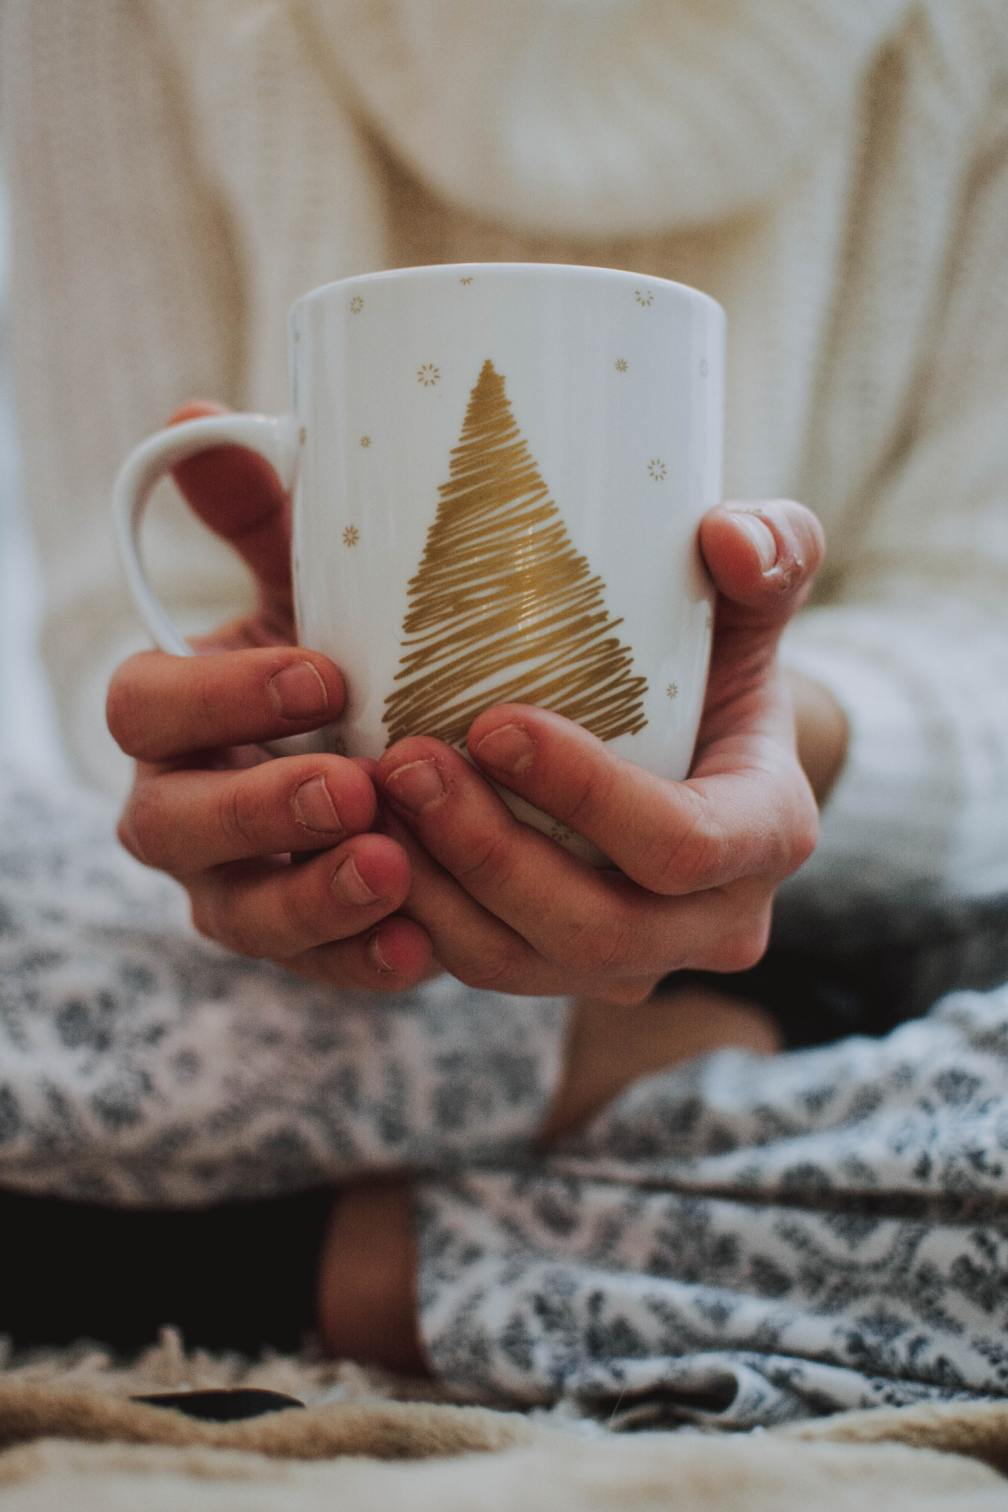 MUG WITH GOLD TREE - Photo by fotografierende on Unsplash